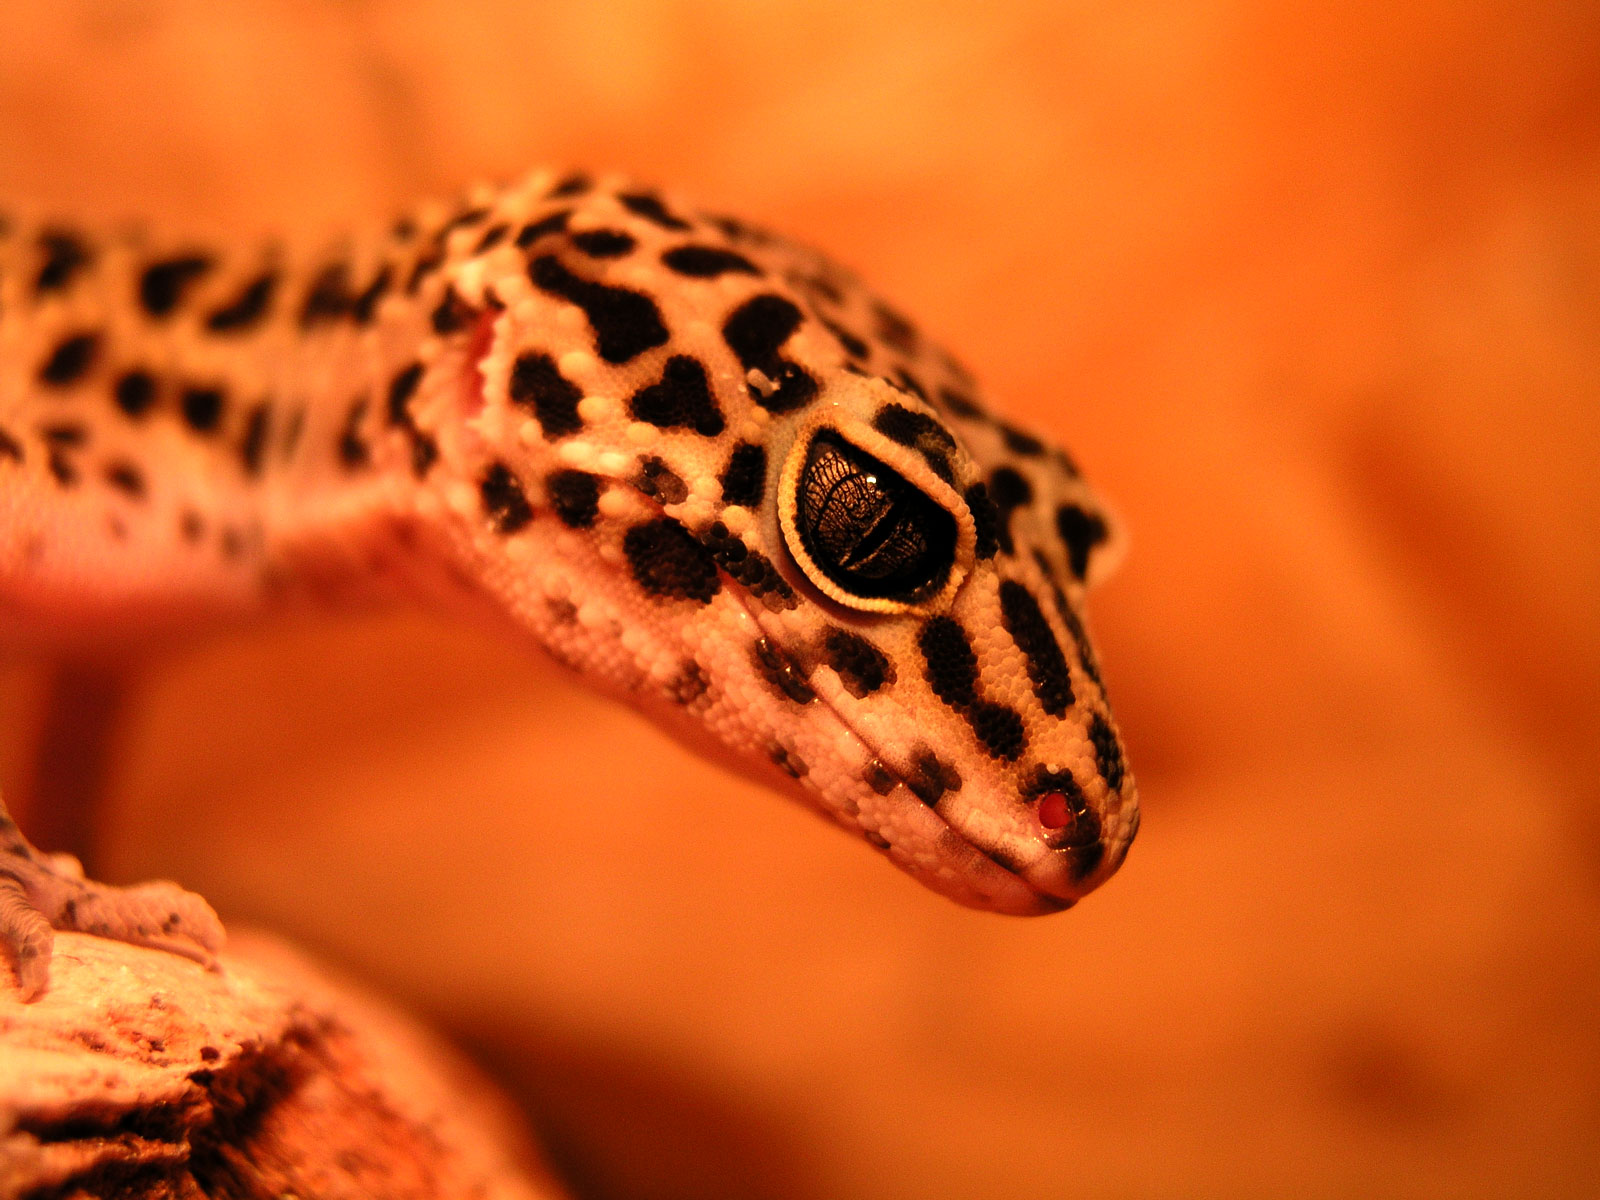 Gecko Wallpapers 4K